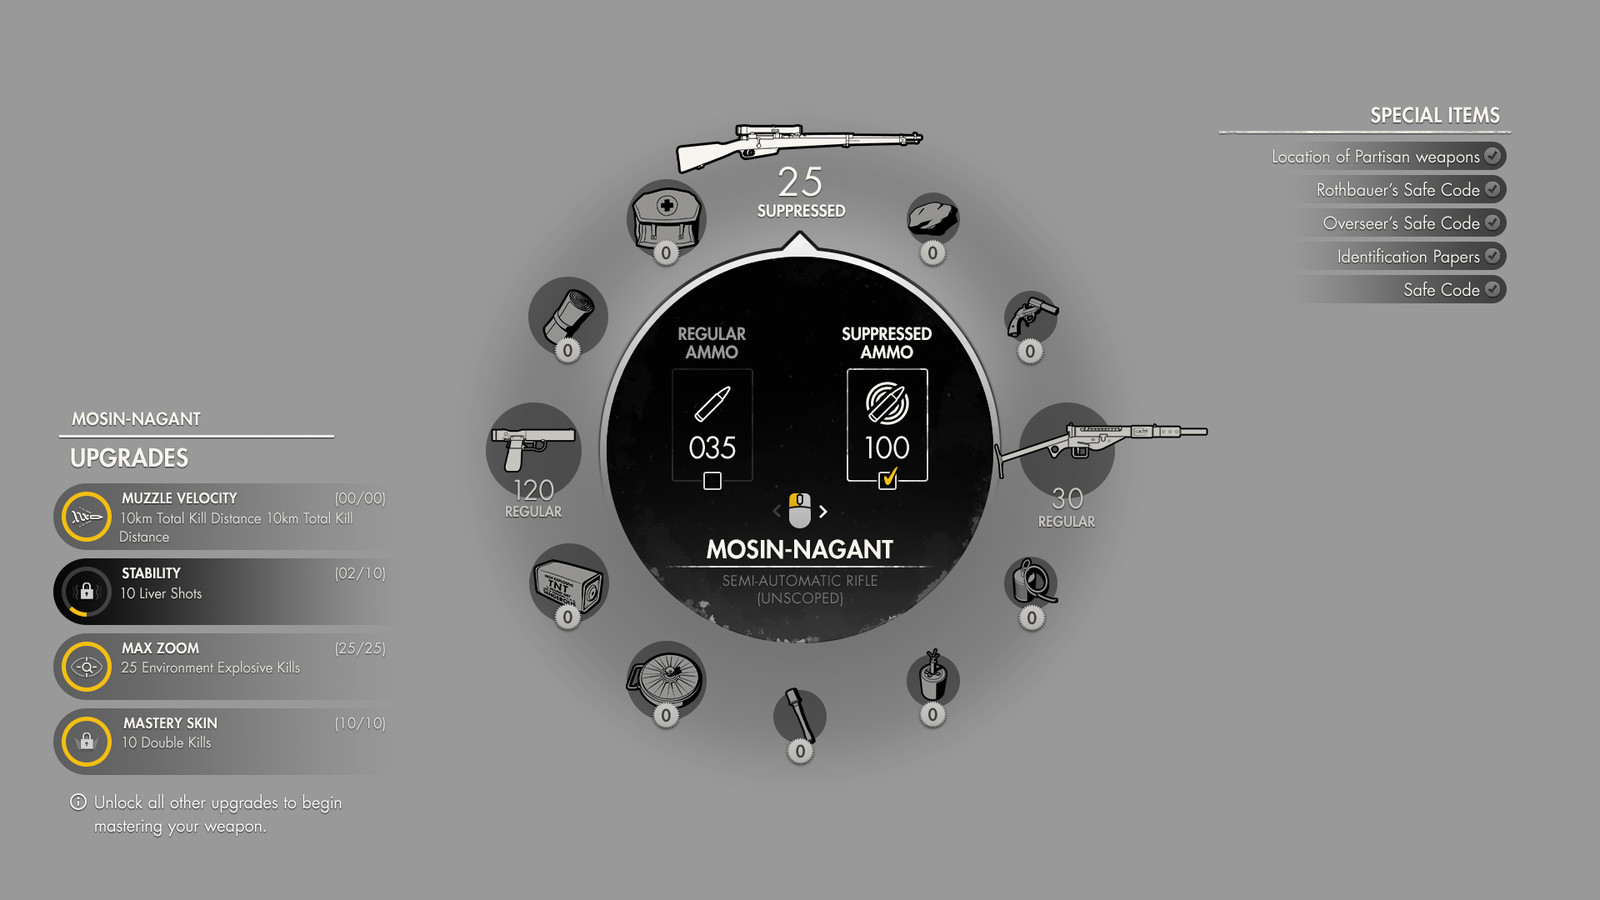 As the design of the Radial Wheel was fleshed out, additional gameplay information was added.